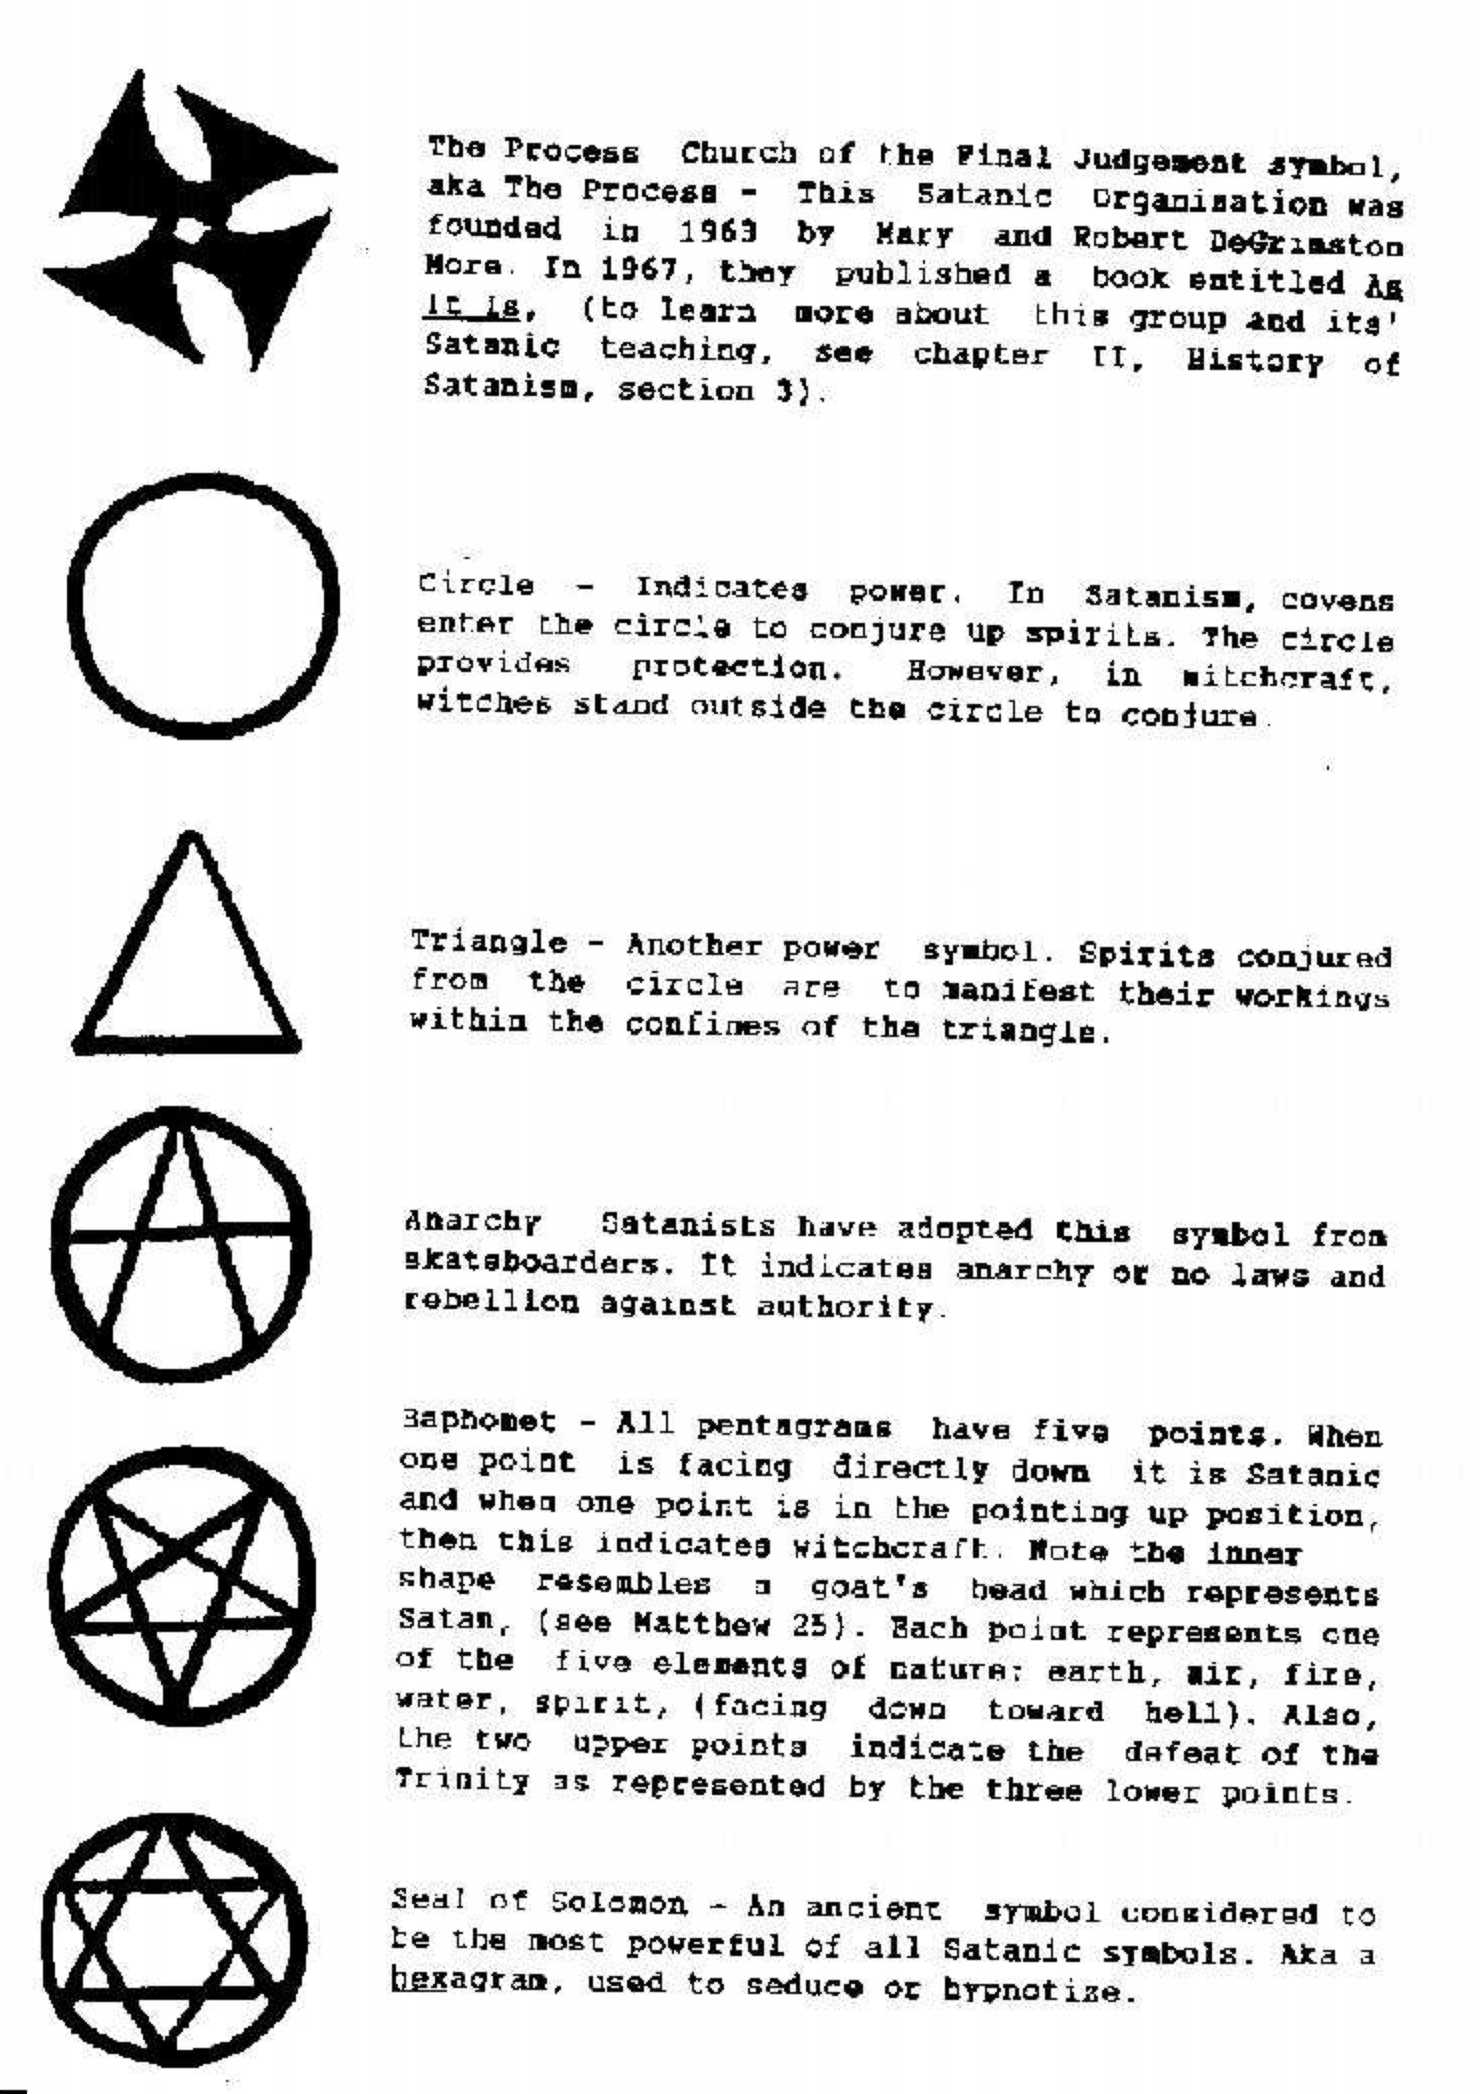 ... whatI'm talking about. Do any of the symbols mean anything to you